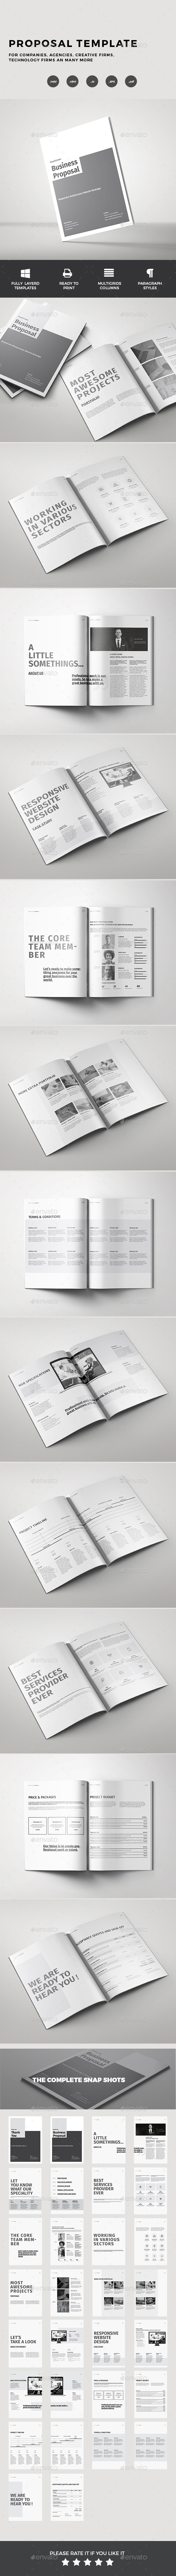 Proposal template indesign indd download here httpgraphicriver proposal template indesign indd download here httpgraphicriver saigontimesfo